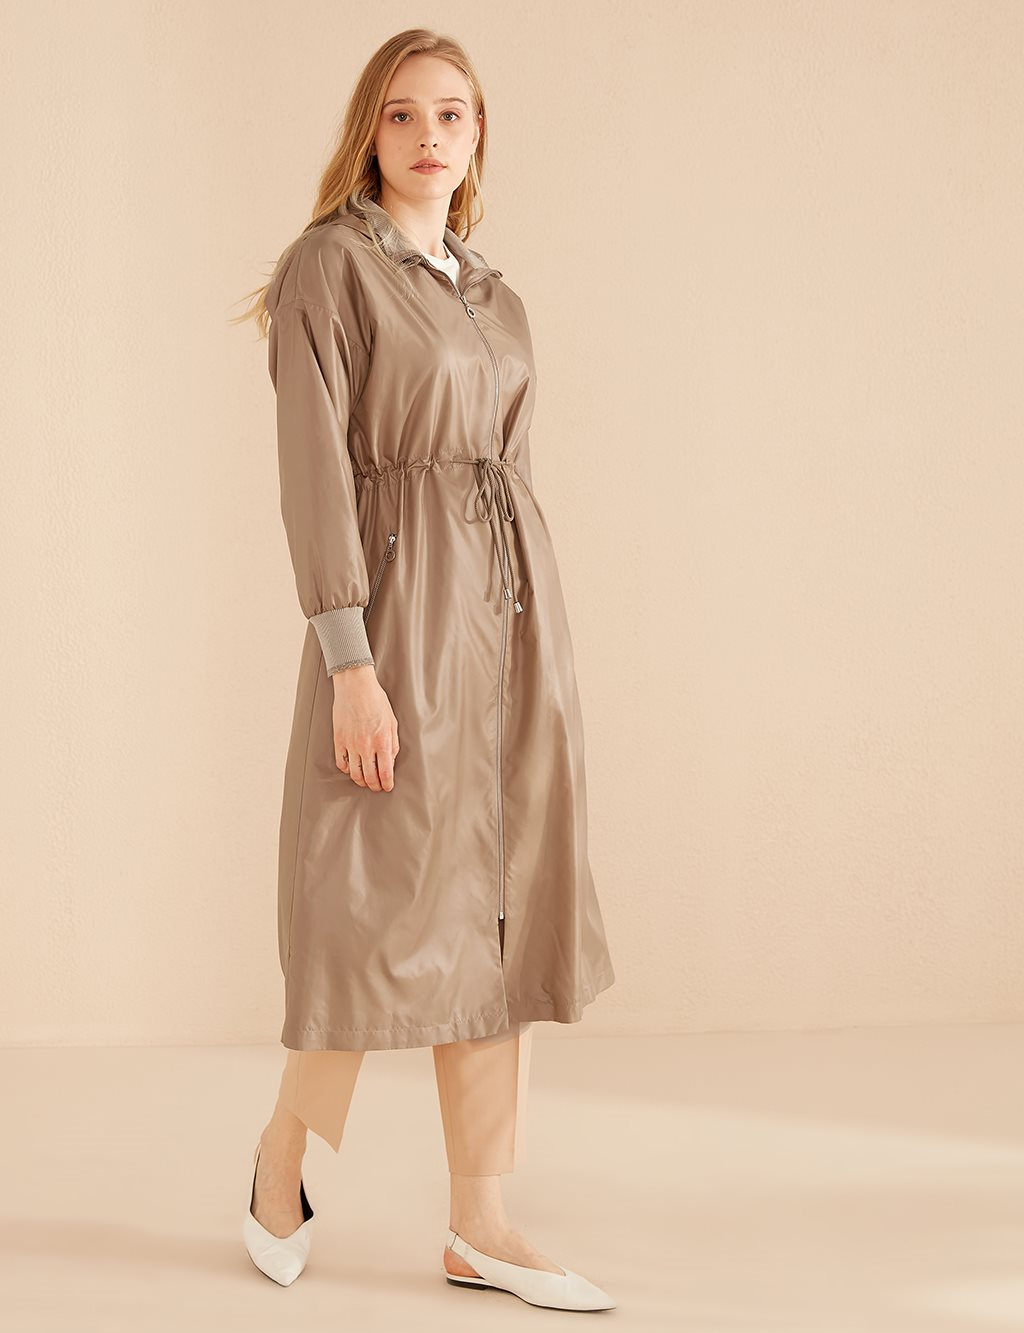 Ruched Coat With Zipper B20 14021 Beige